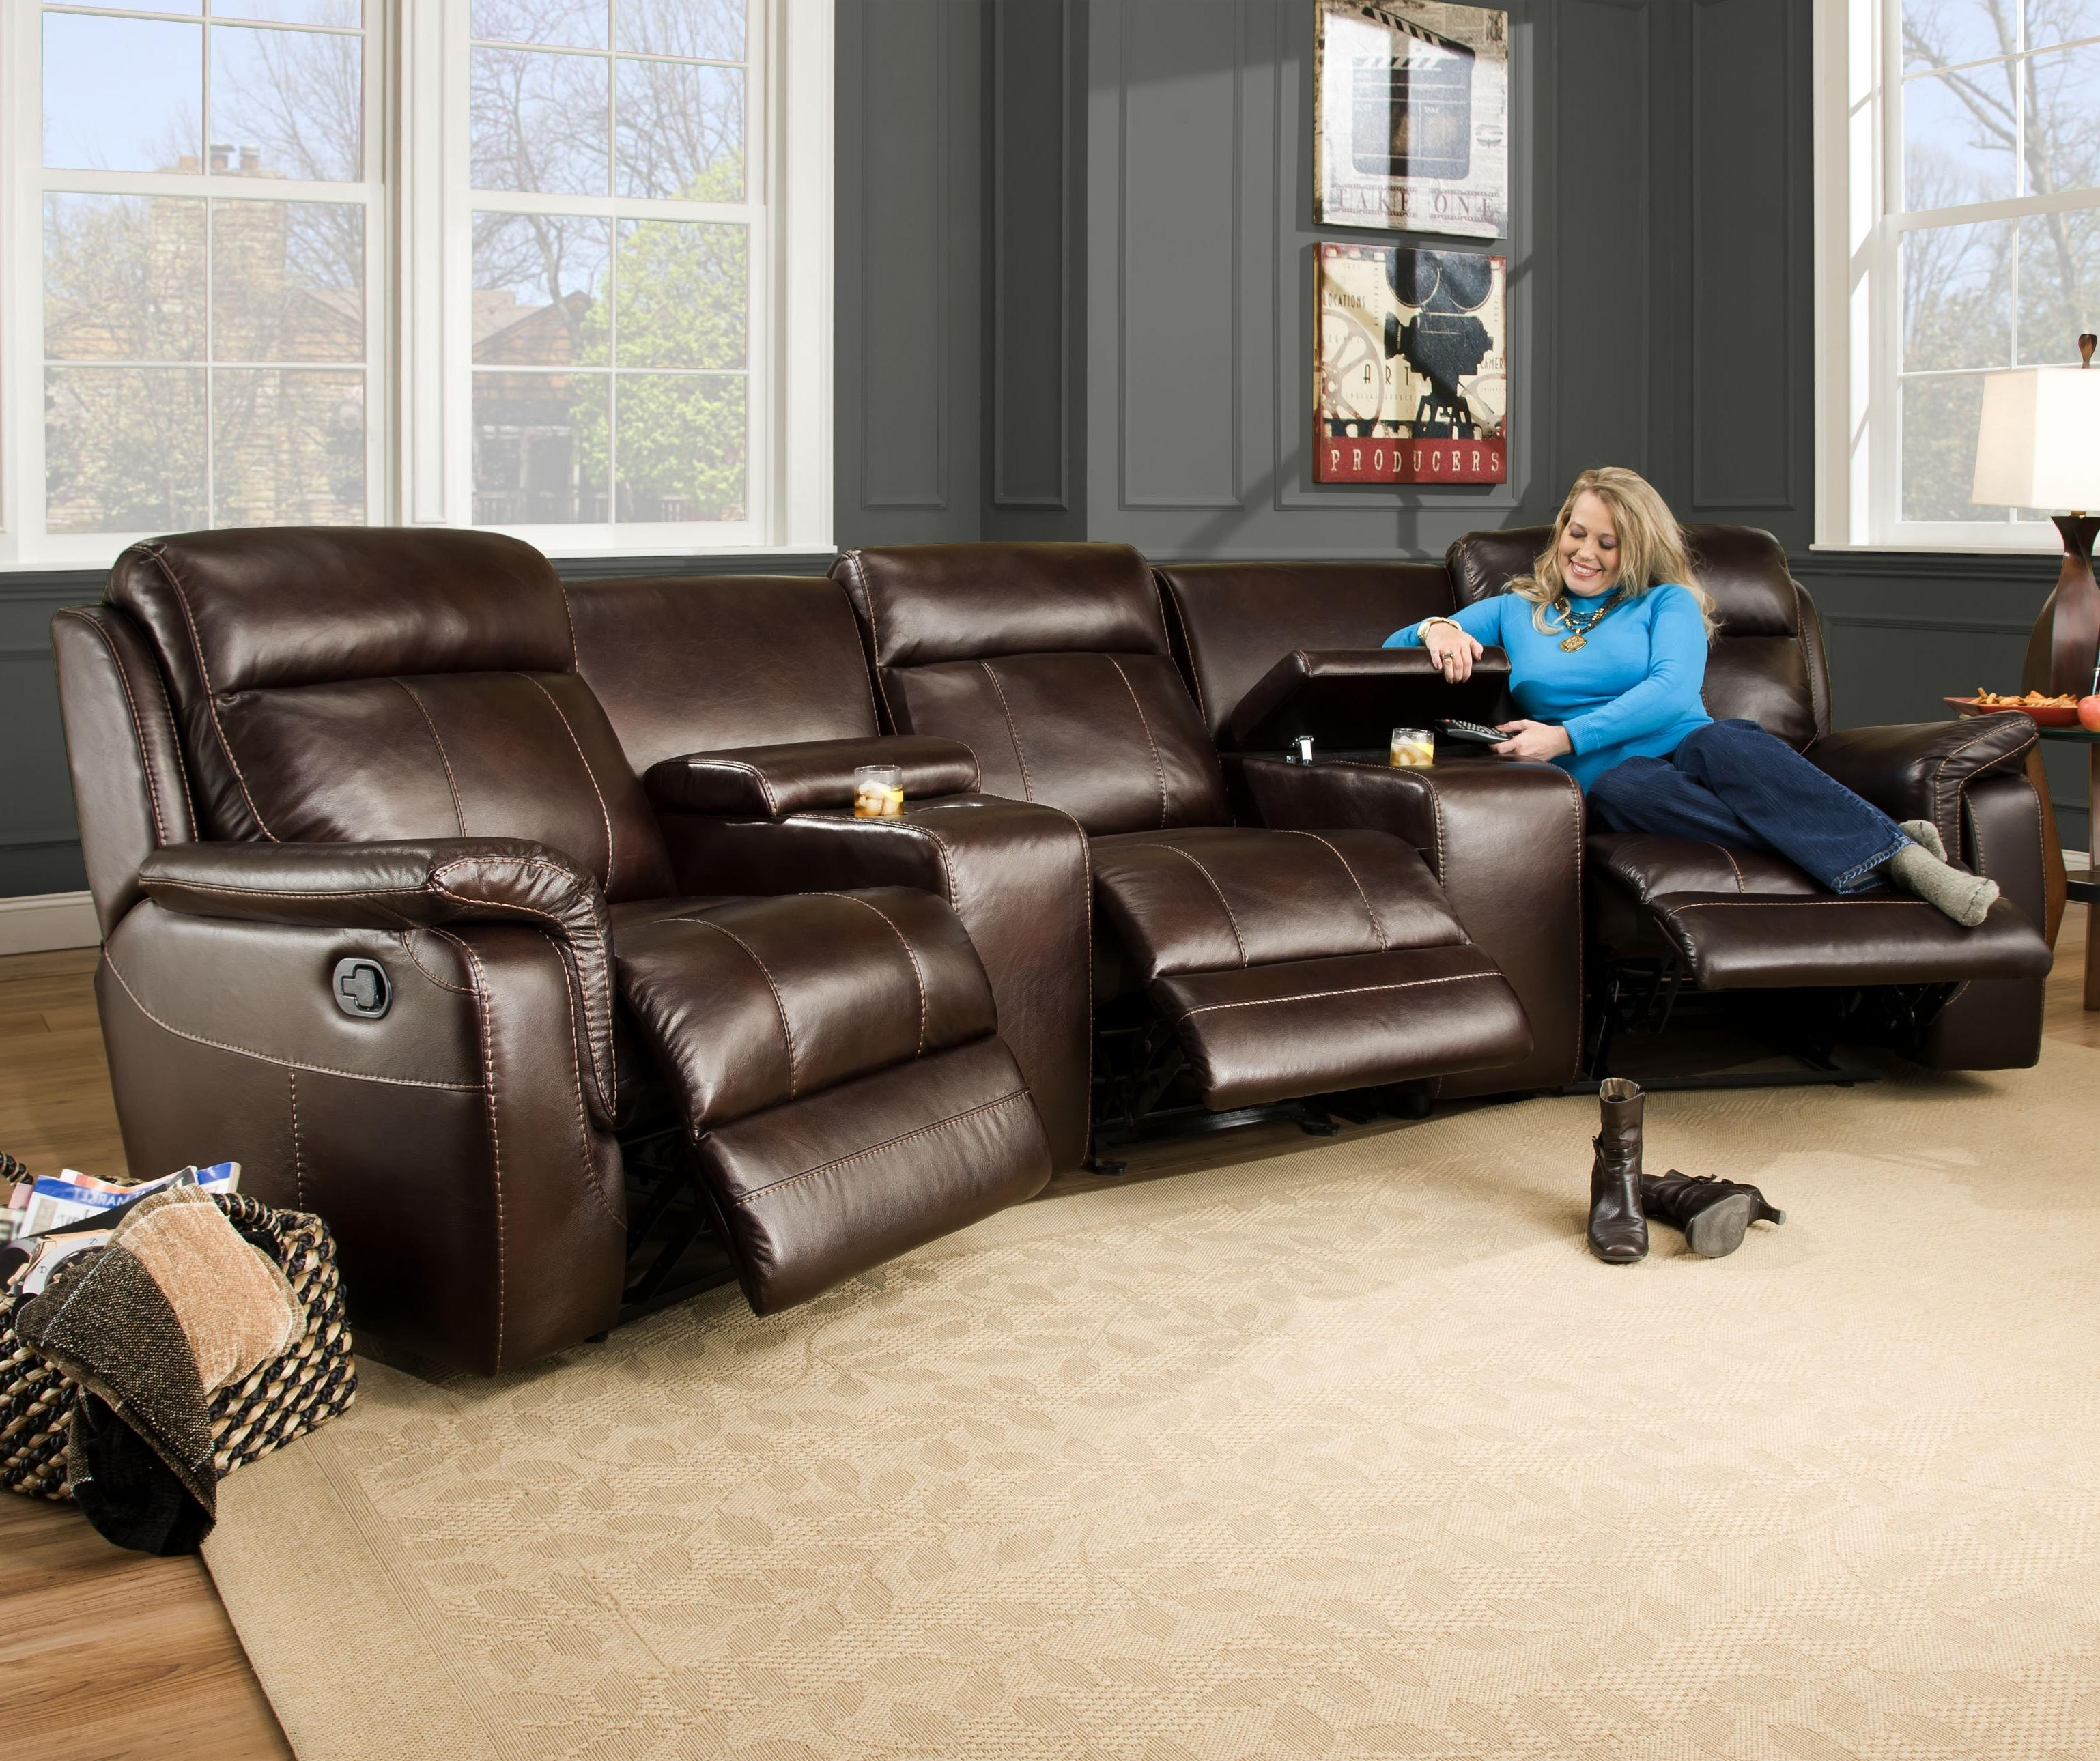 Fancy Curved Reclining Sofa 58 Sofas And Couches Set With Curved In Curved Recliner Sofas (View 5 of 10)